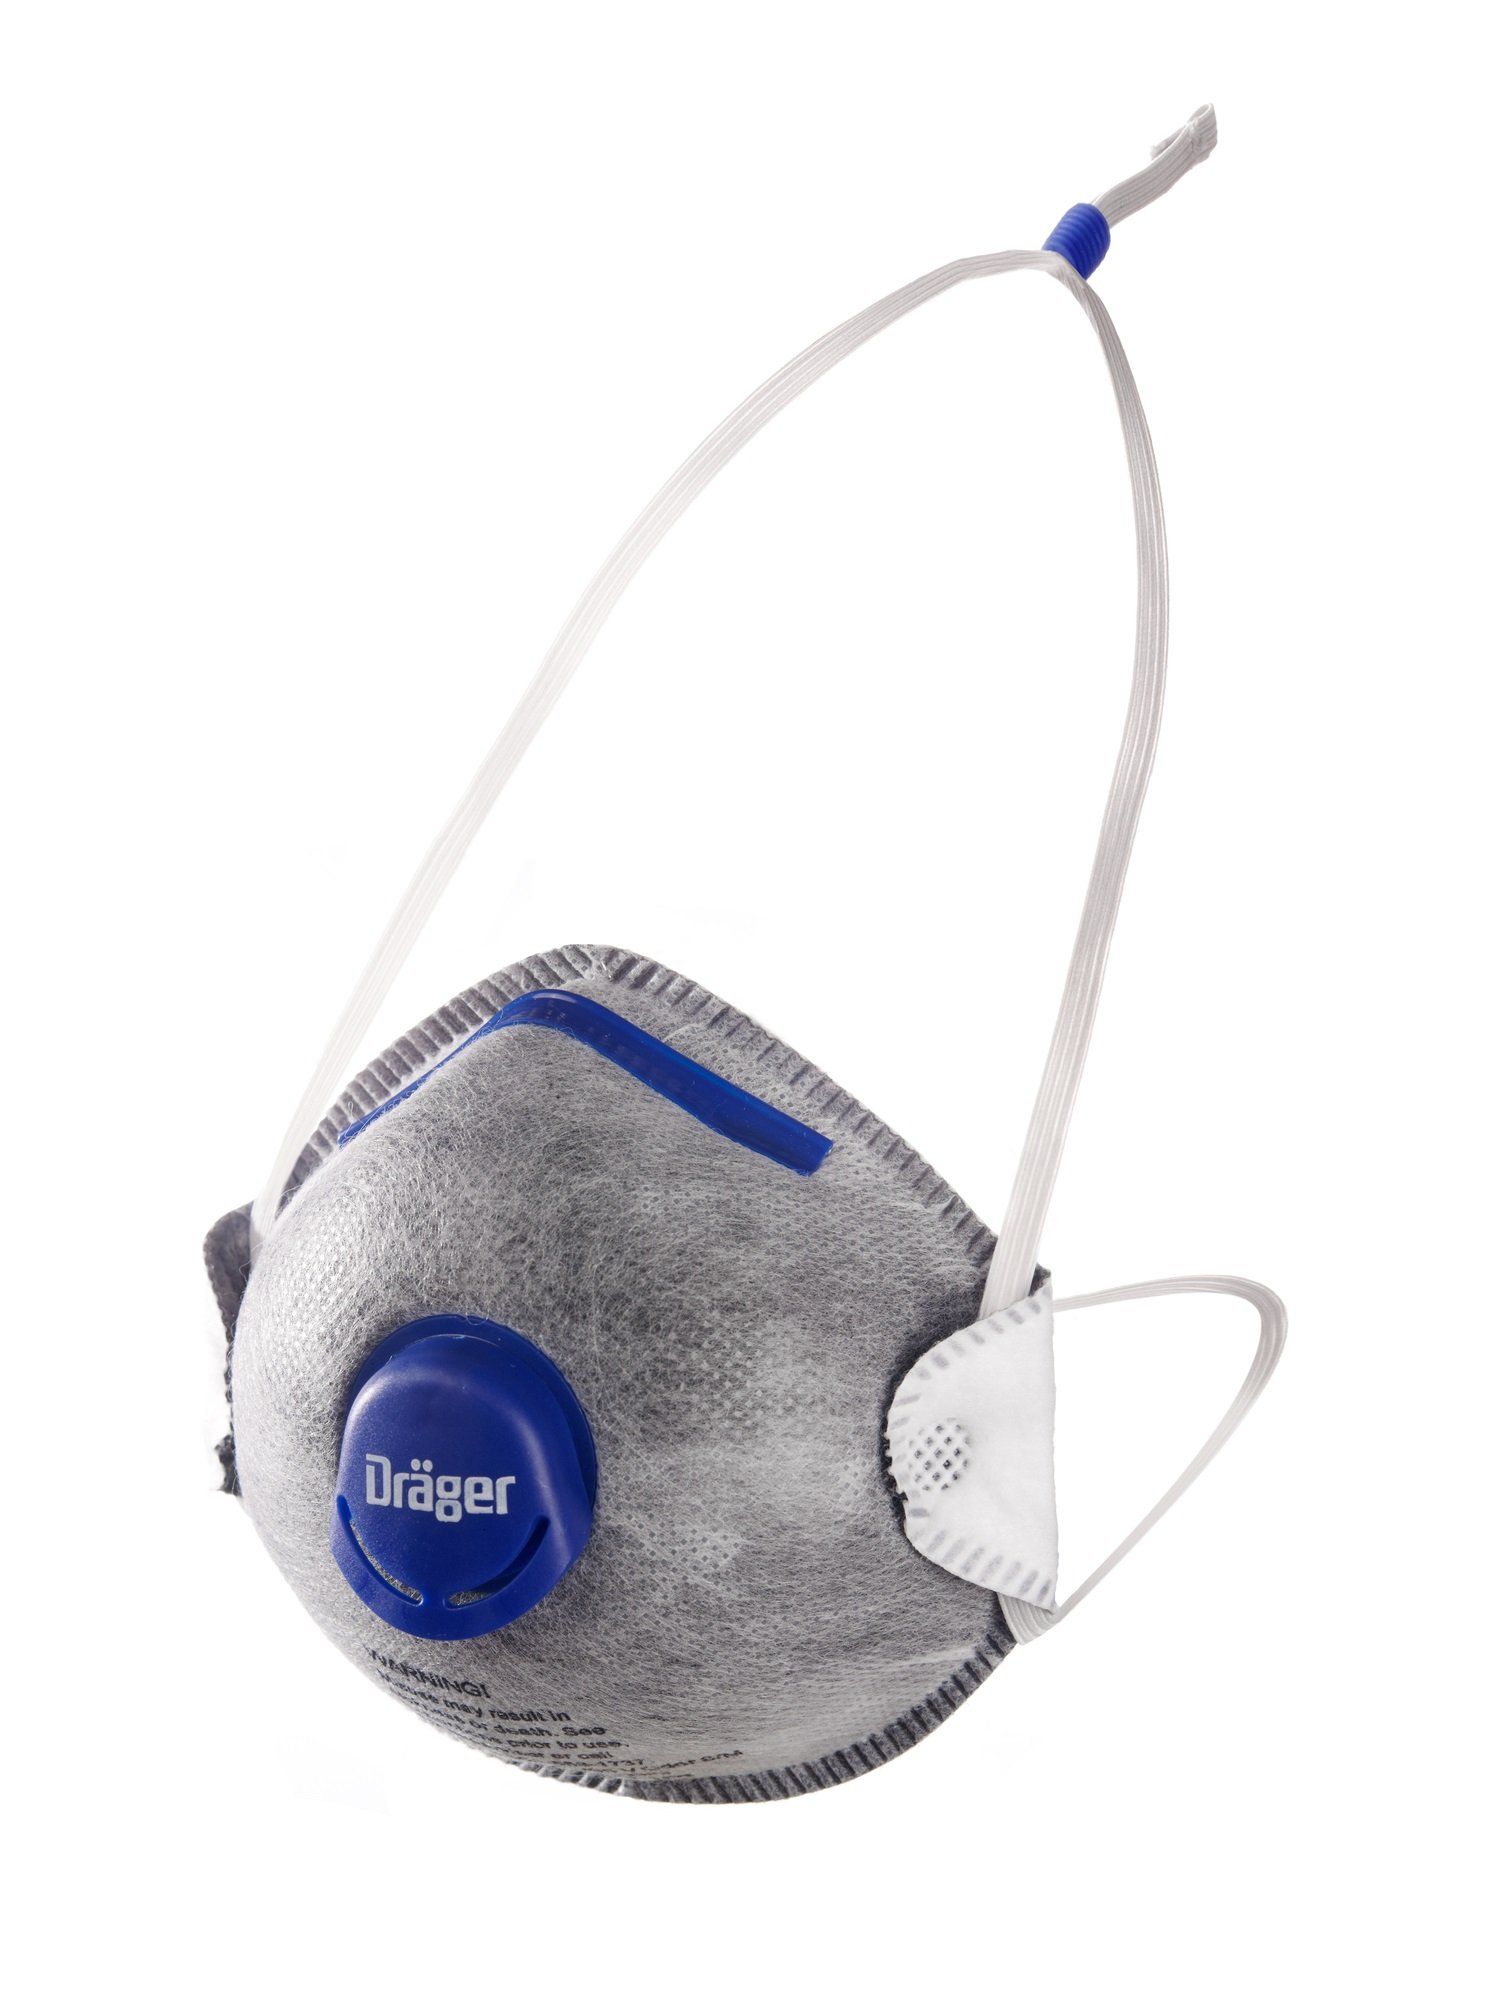 Dräger X-plore 1350 N95 respirator mask with exhalation valve and nuisance odor organic vapor relief | size M/L | molded, NIOSH-certified | against dust, pollen and other particles | 10 pieces